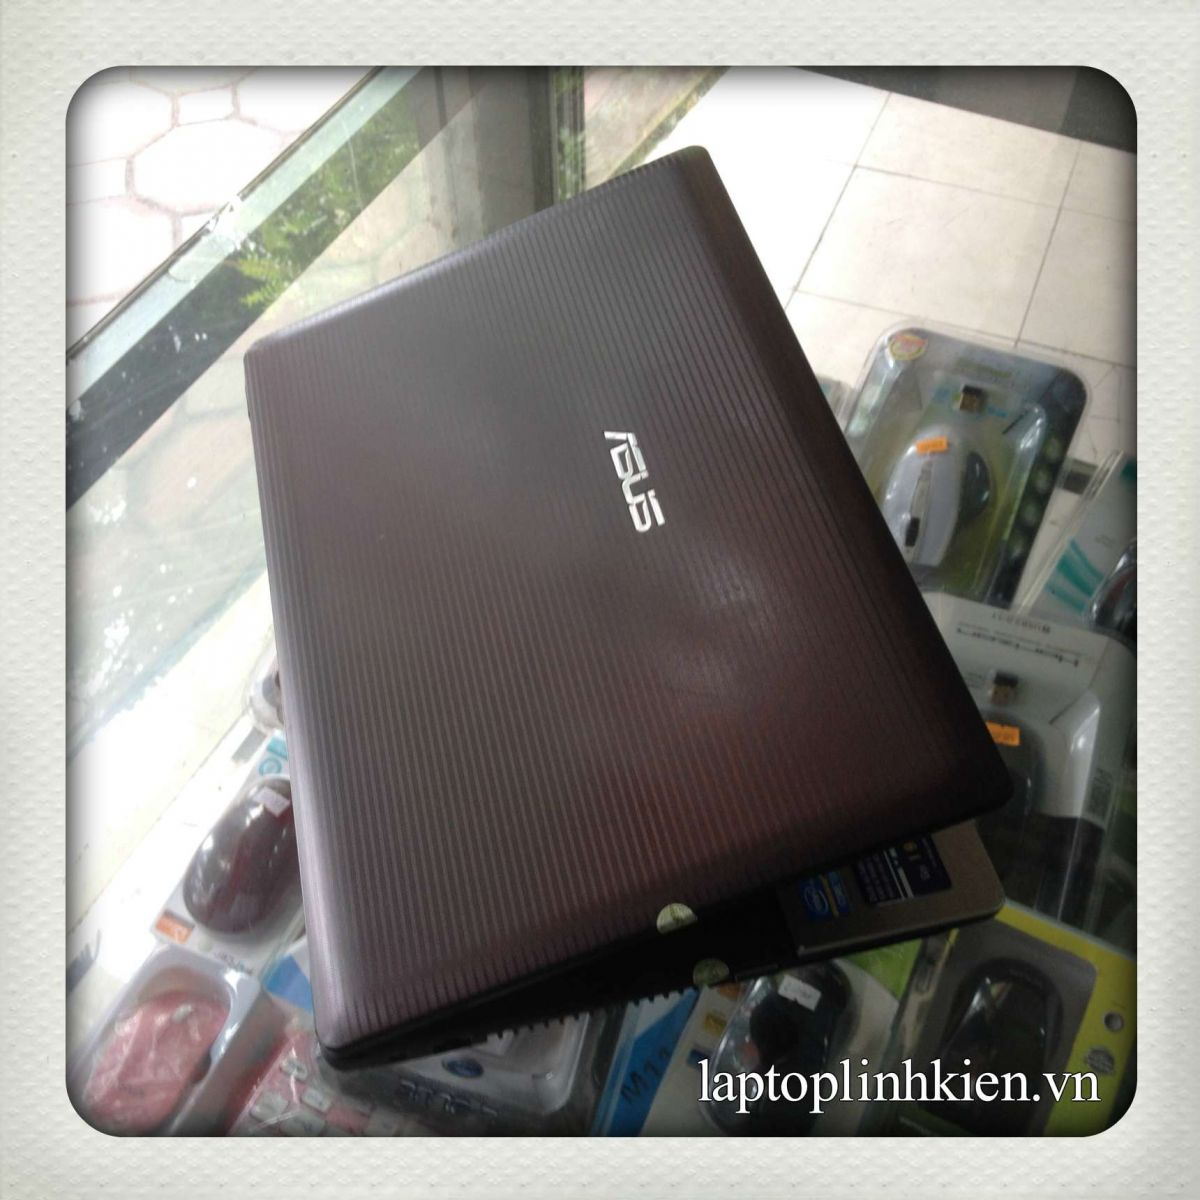 Laptop cũ Asus K45A Core i3-3120,Ram 4Gb,HDD 500GB